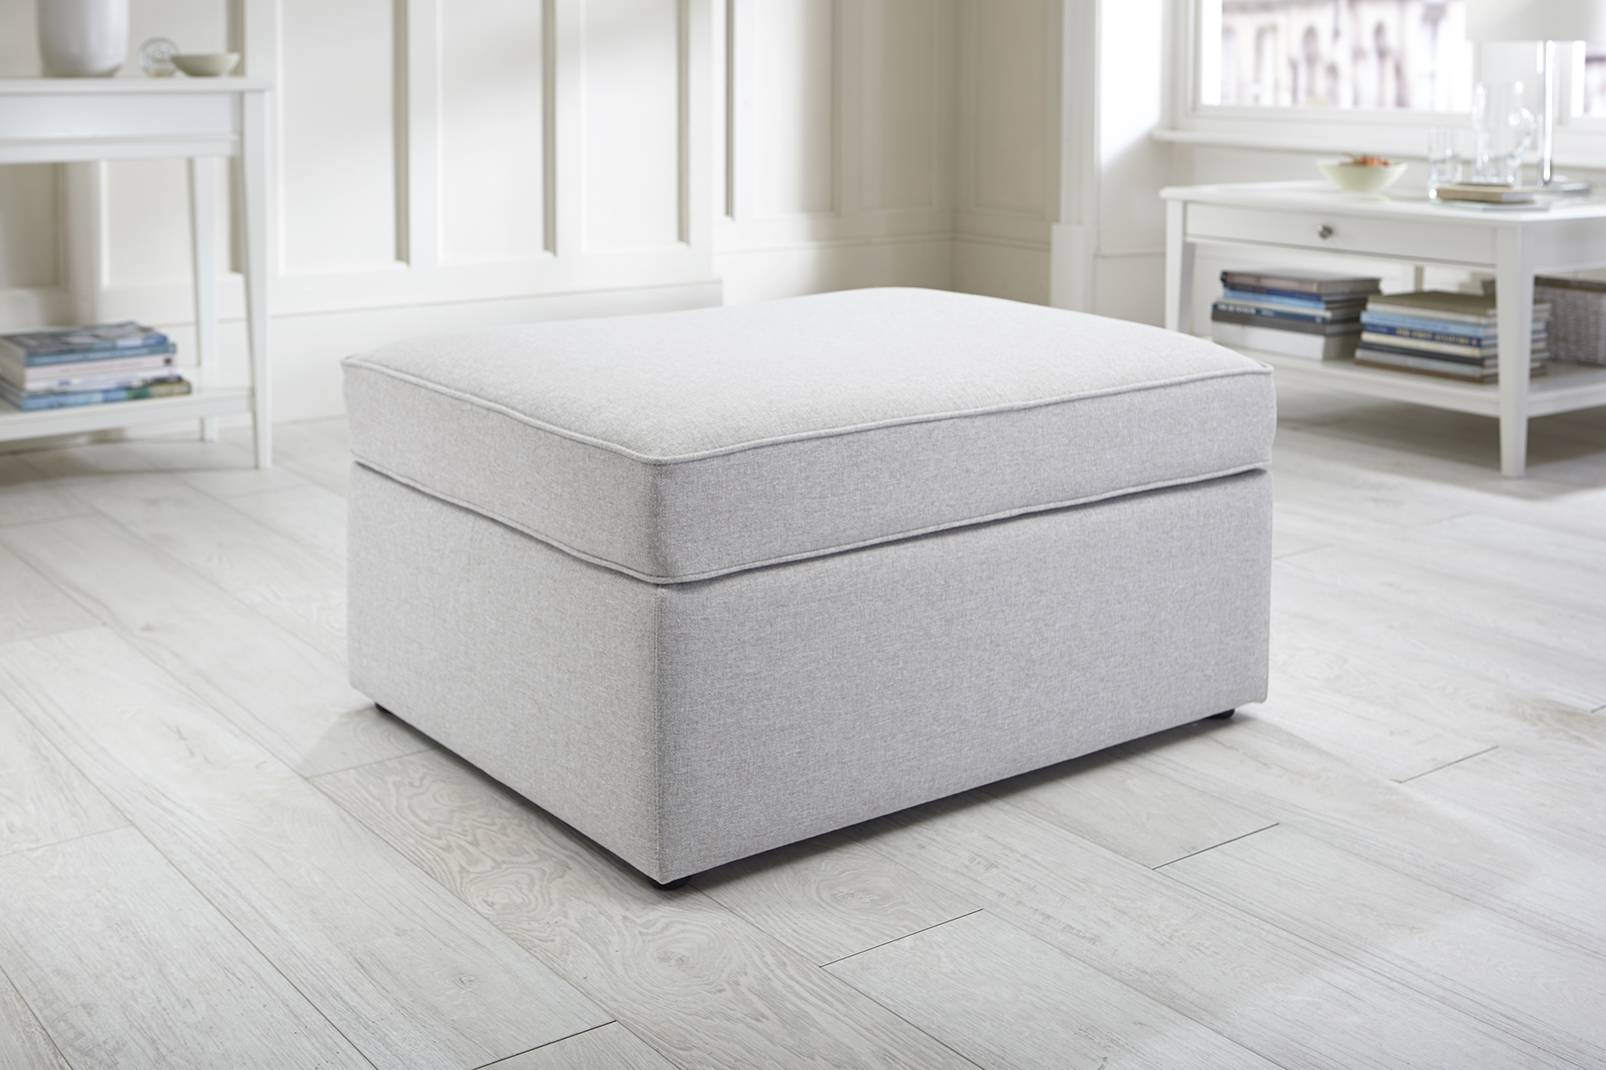 Footstool Pouffe Sofa Folding Bed. About Folding Faux Leather intended for Footstool Pouffe Sofa Folding Bed (Image 8 of 25)